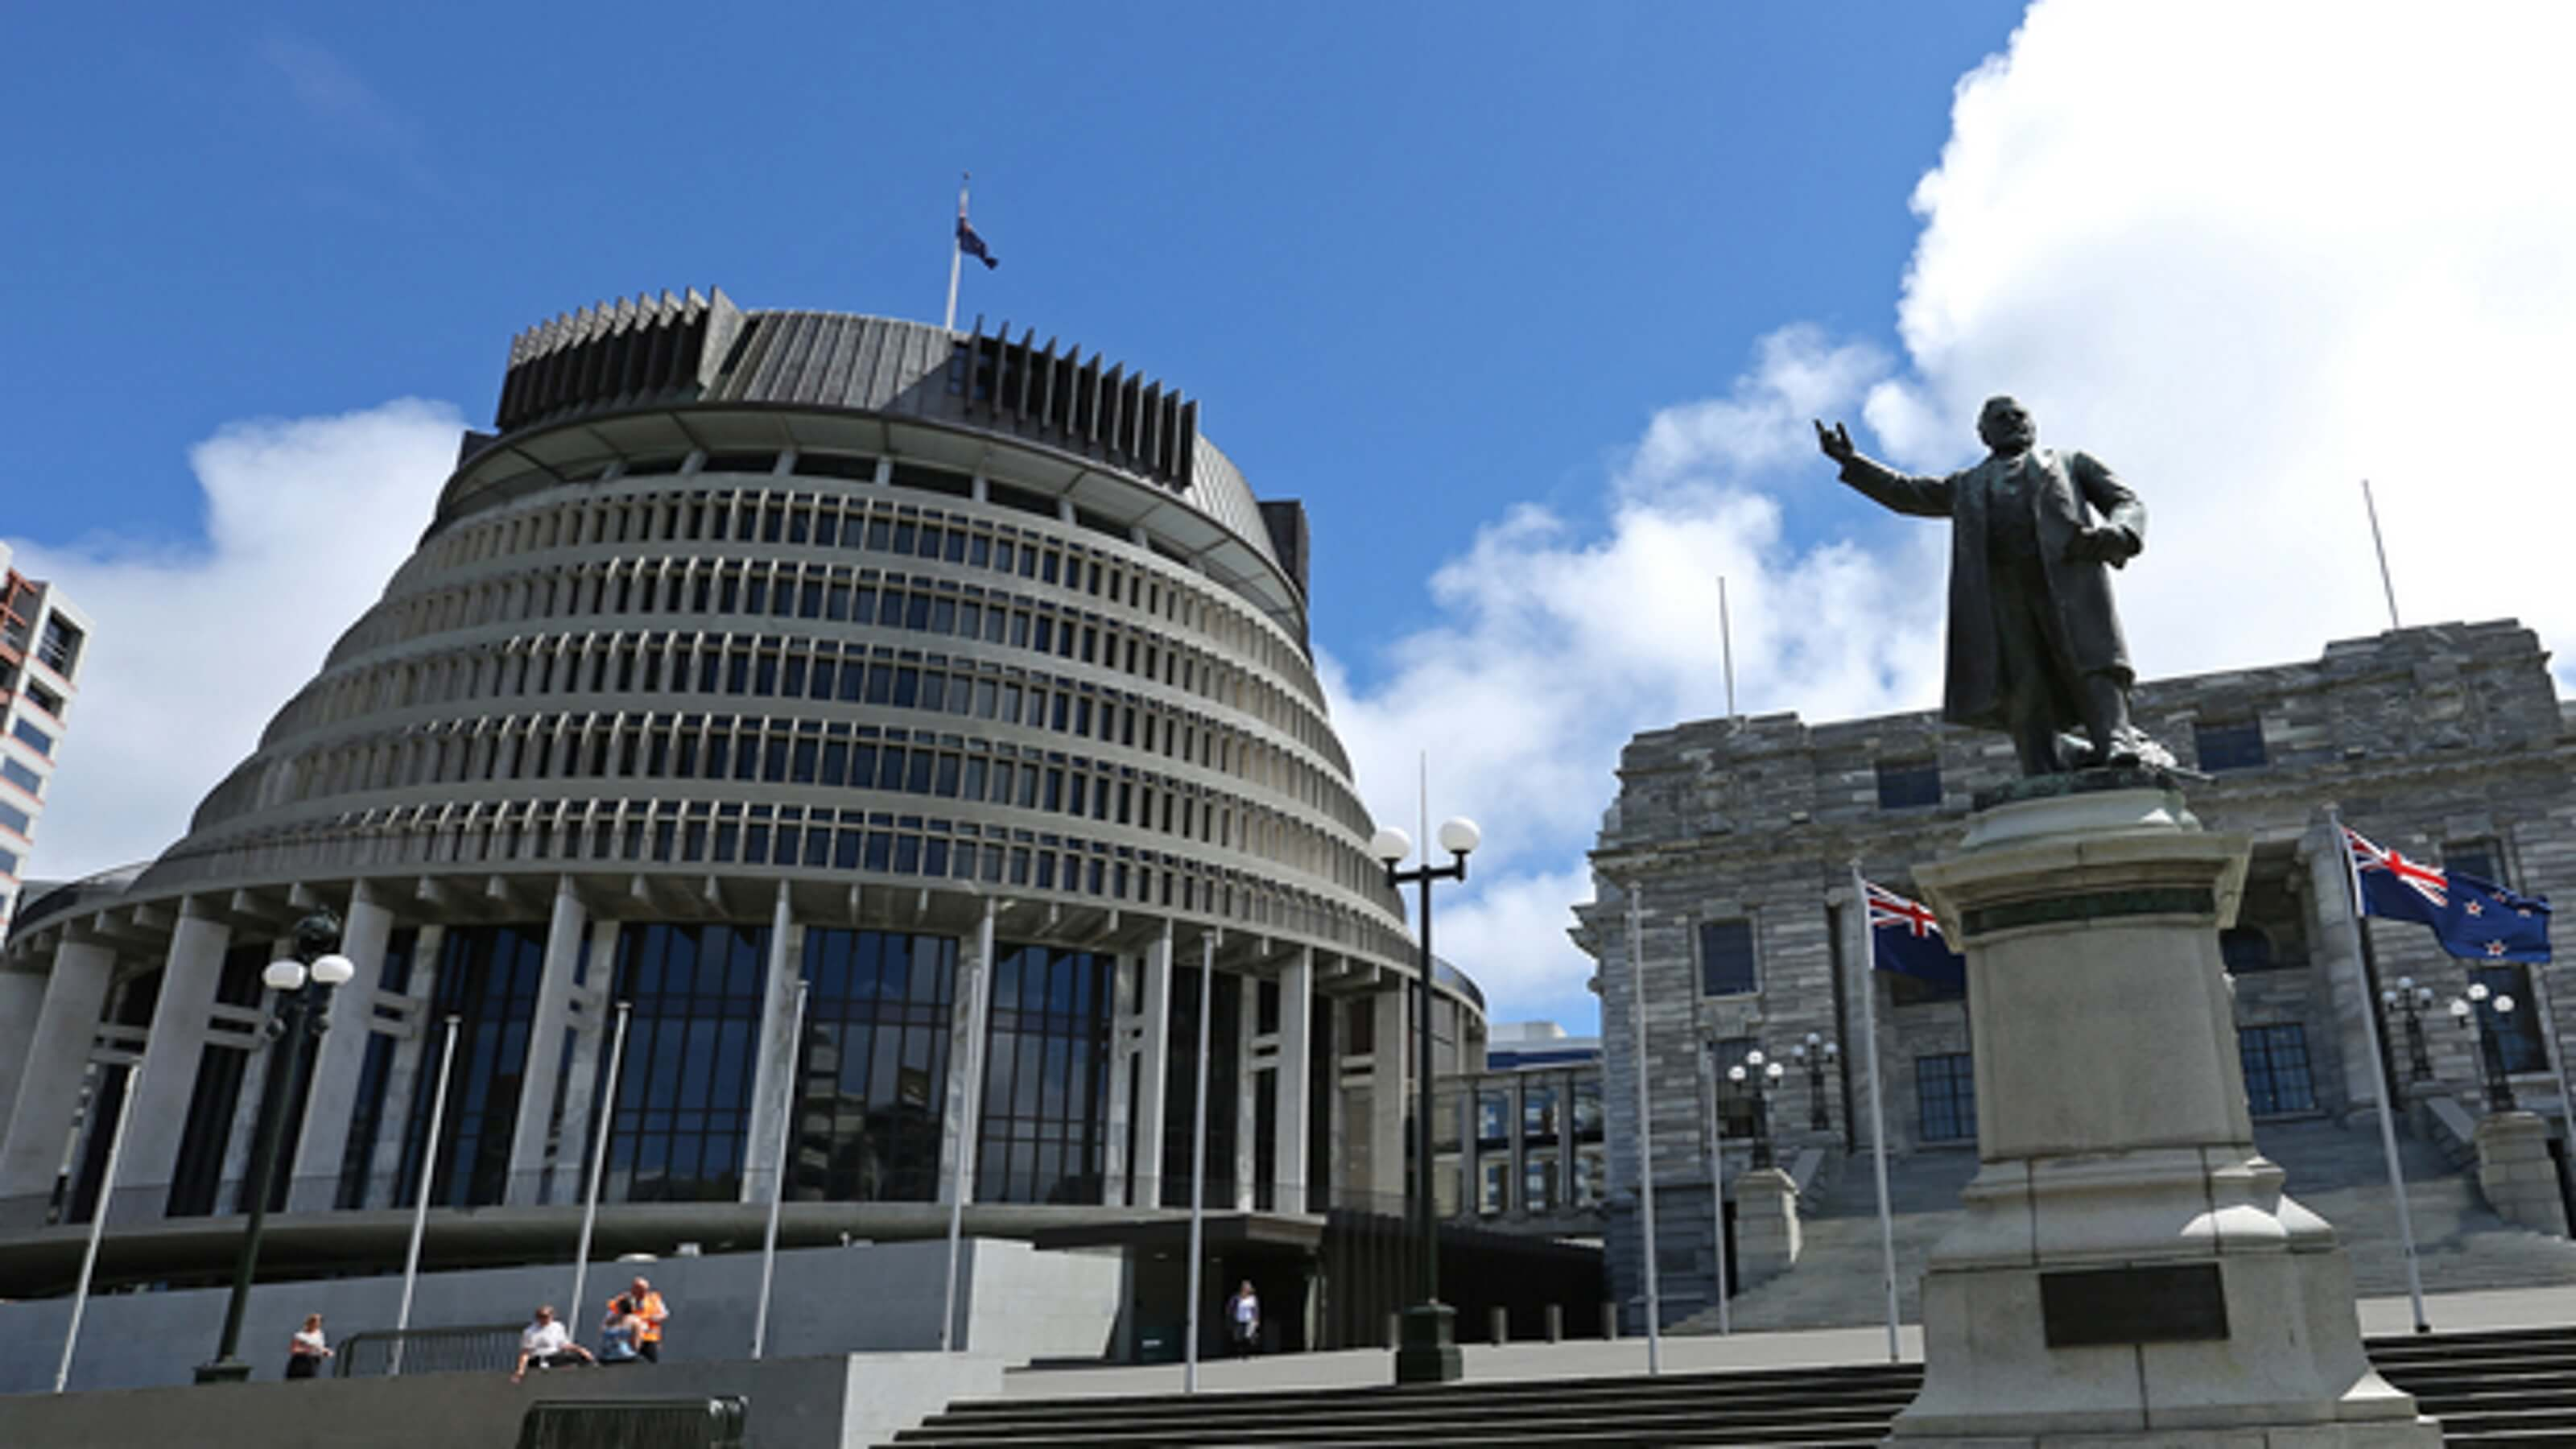 Wellington Parliament buildings with statue of Seddon